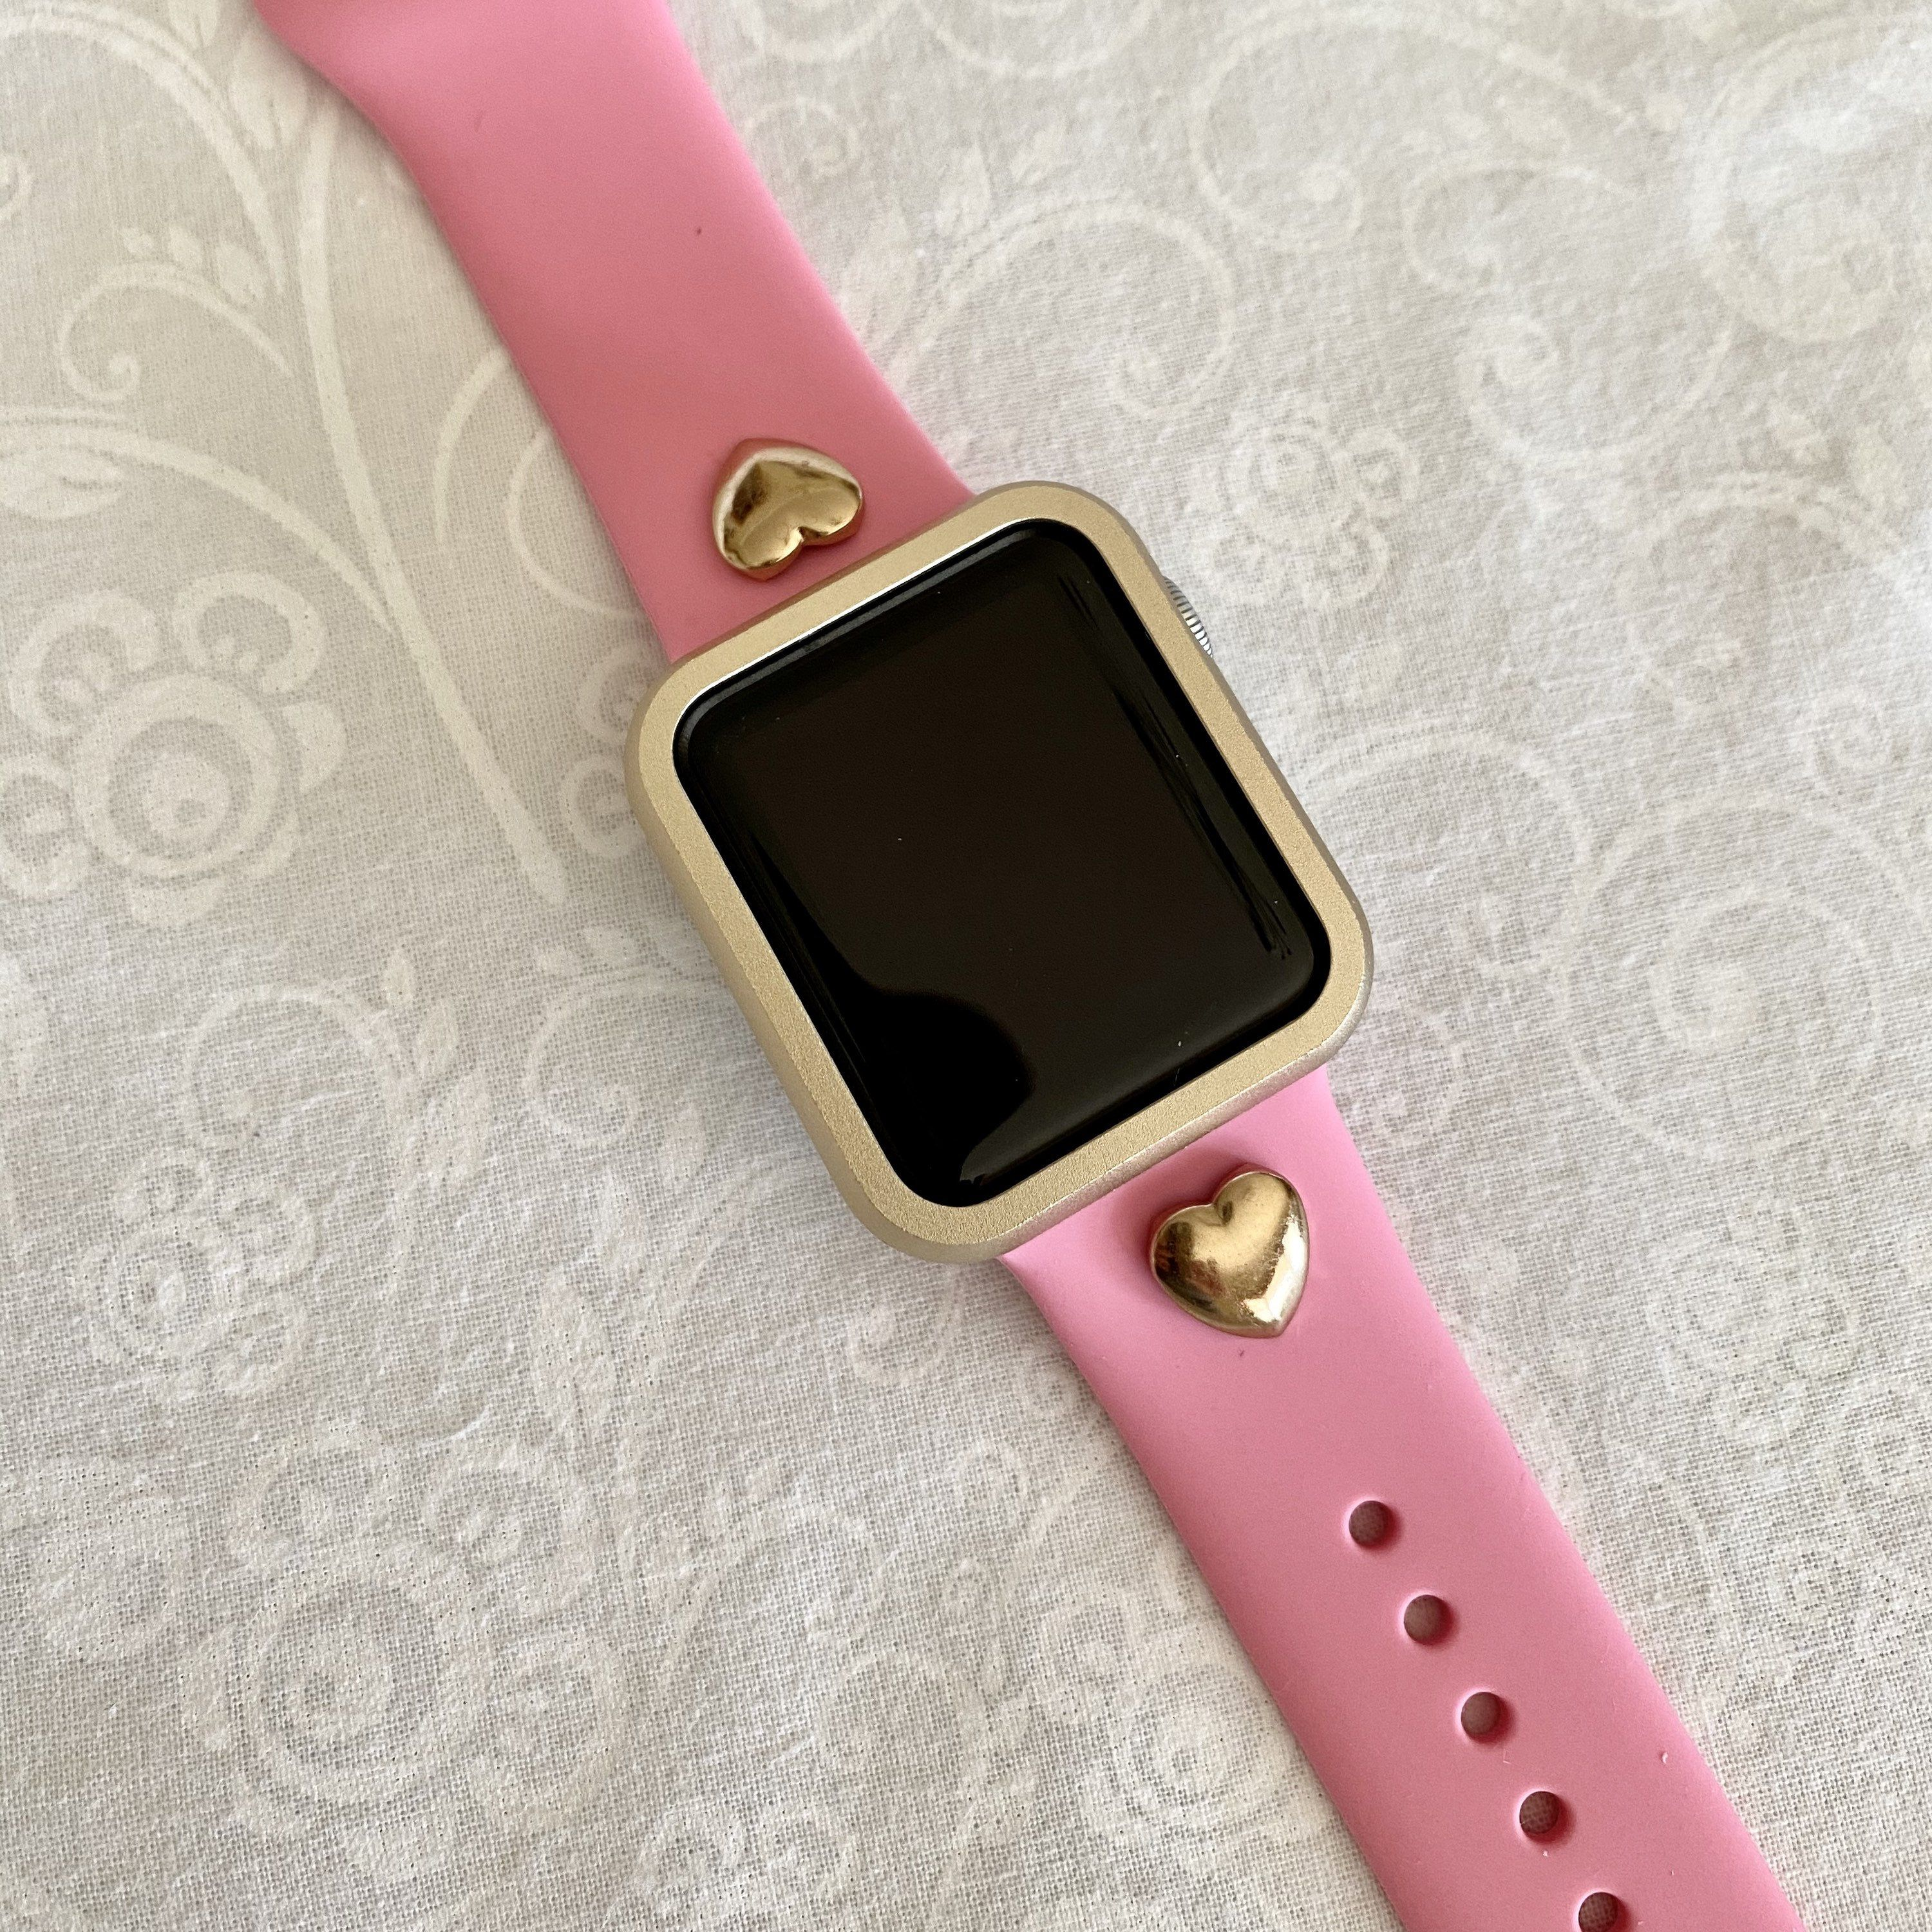 Apple Watch Band Hot Pink Silicone Heart Rivet Band 38mm 40mm 42mm 44mm Series 1 2 3 4 5 6 Gold Hearts Wit Apple Watch Bands 38mm Apple Watch Band Apple Watch